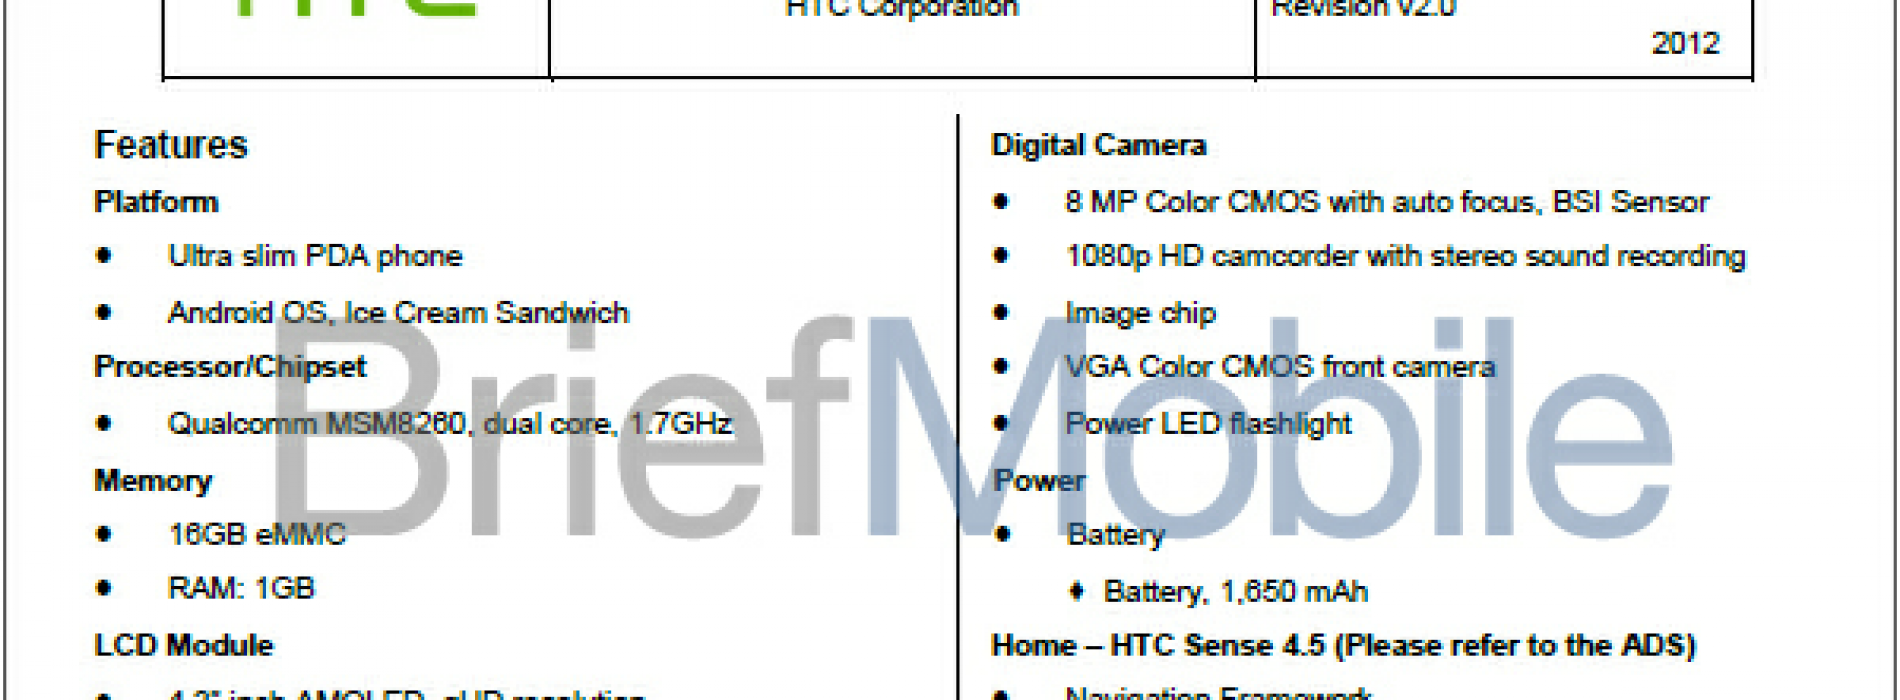 HTC Ville C leaks which suggests slightly modified HTC One S